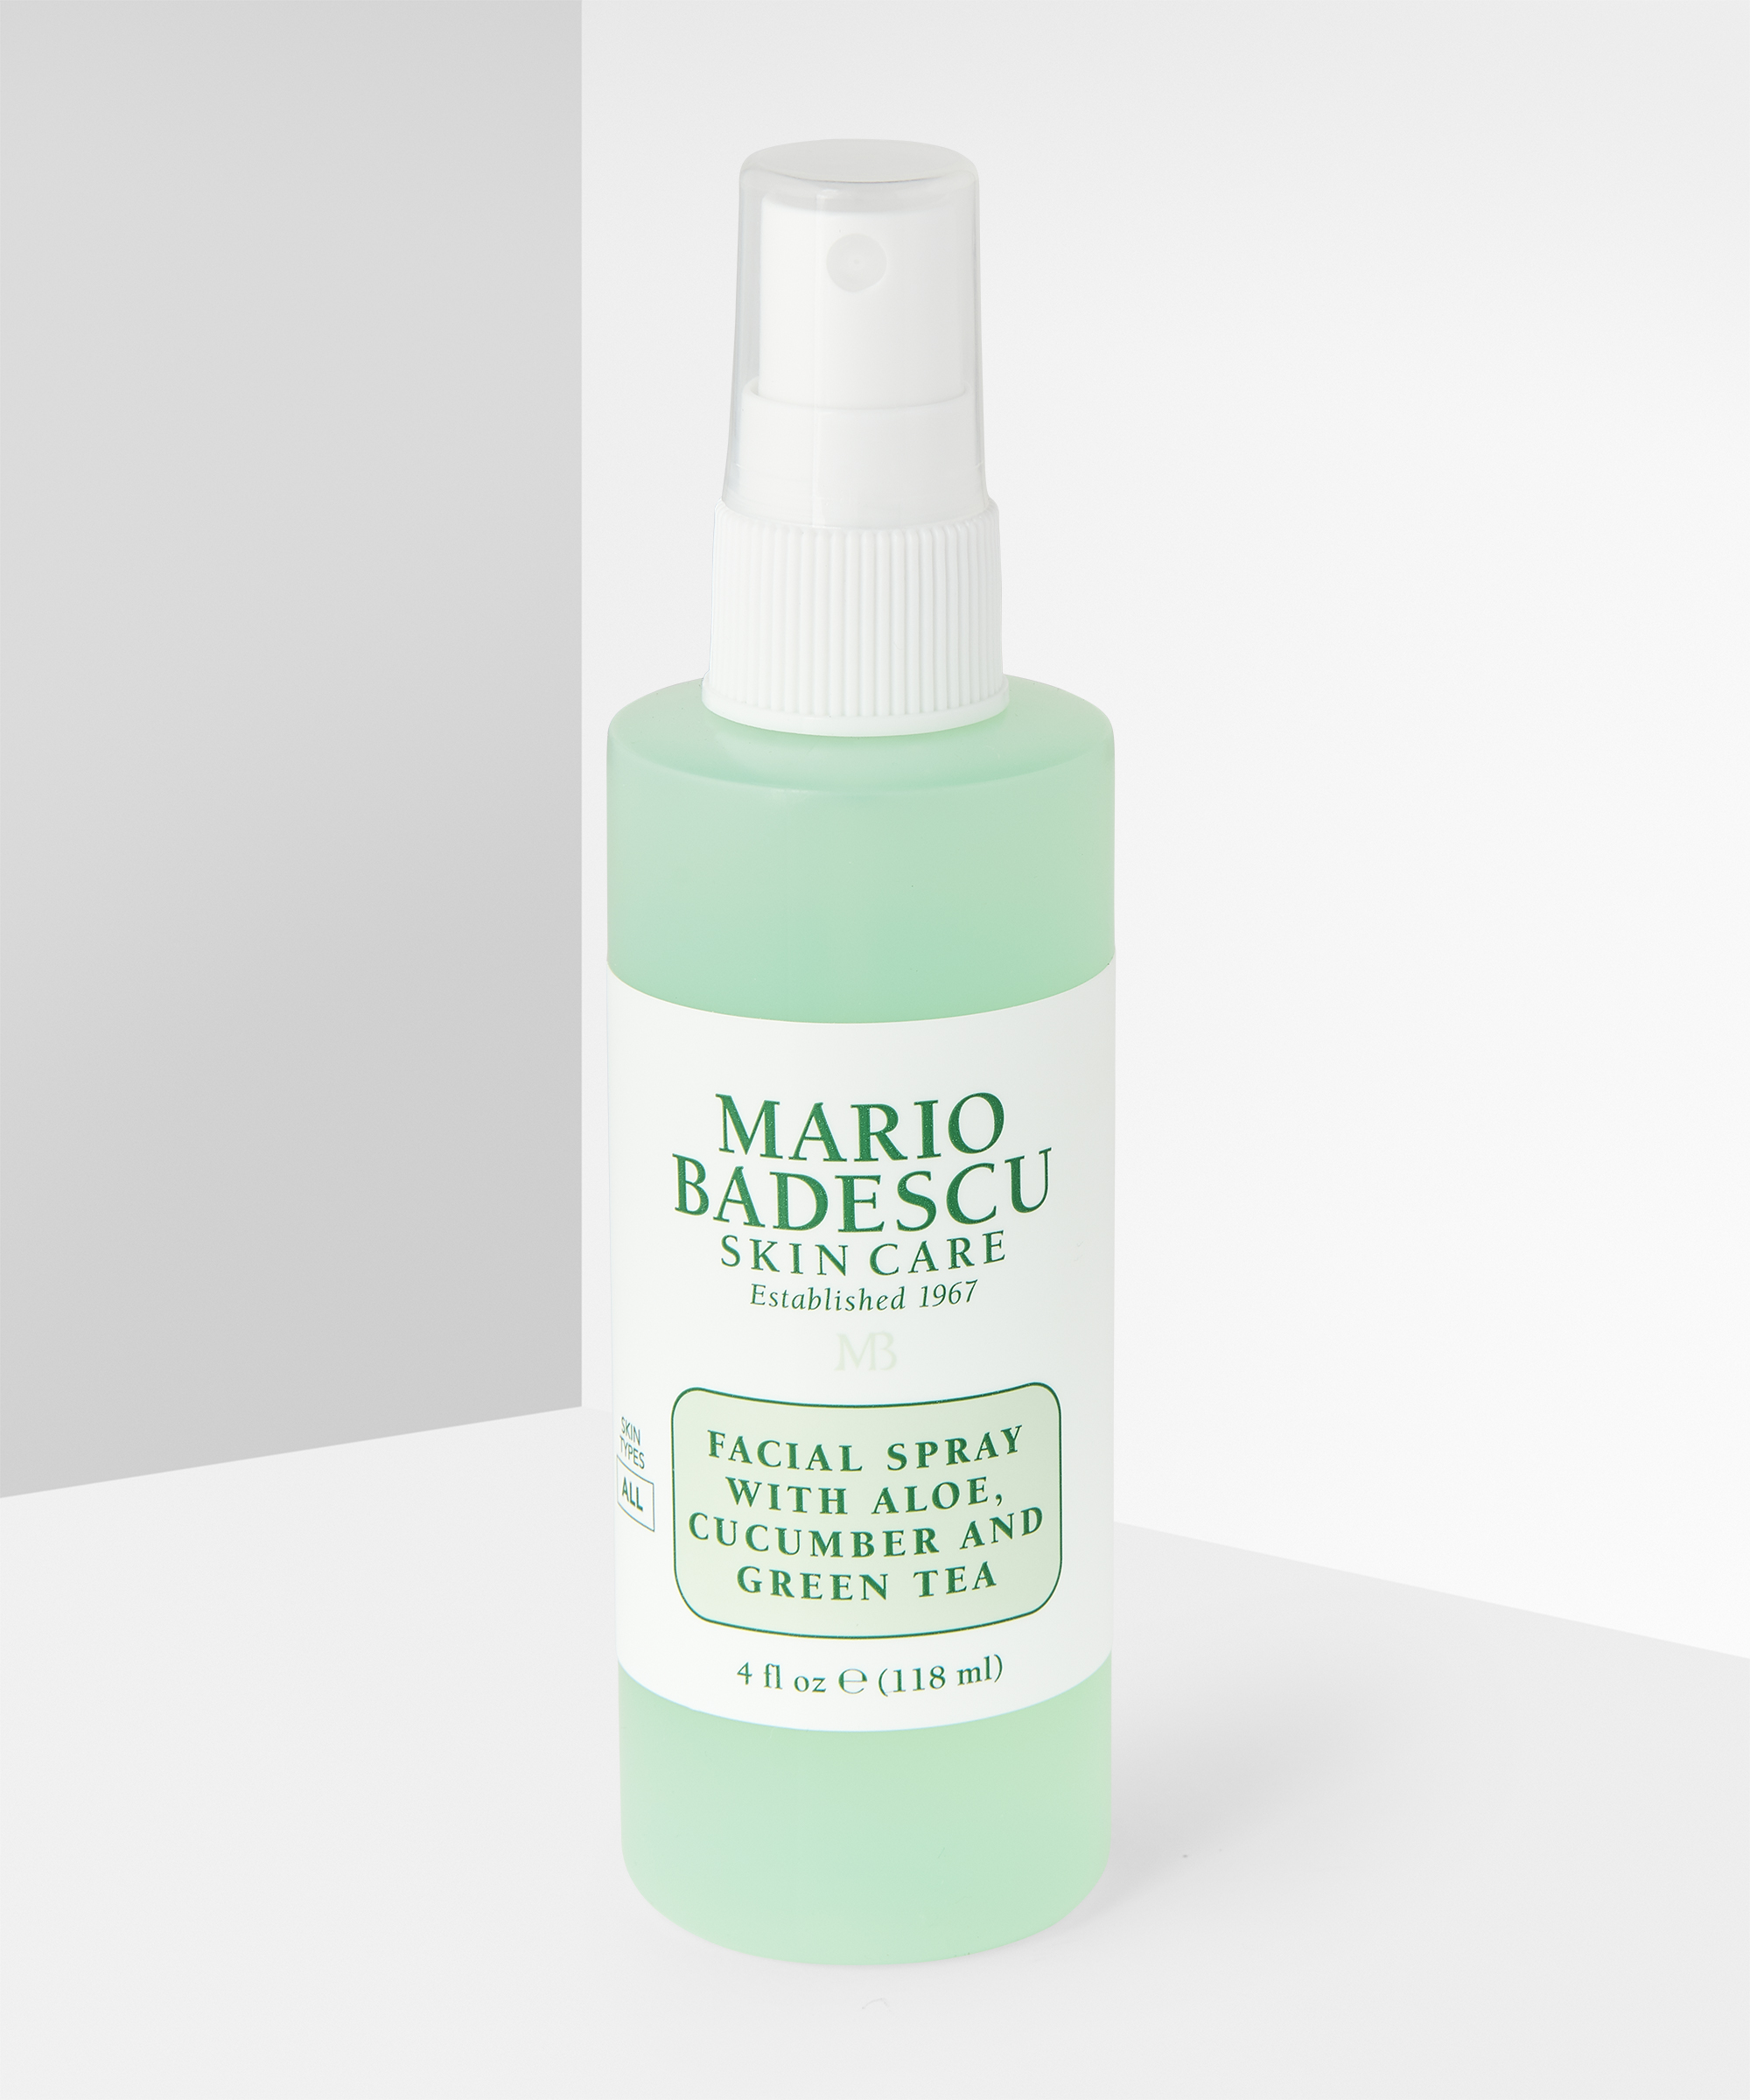 Facial Spray With Aloe Cucumber And Green Tea